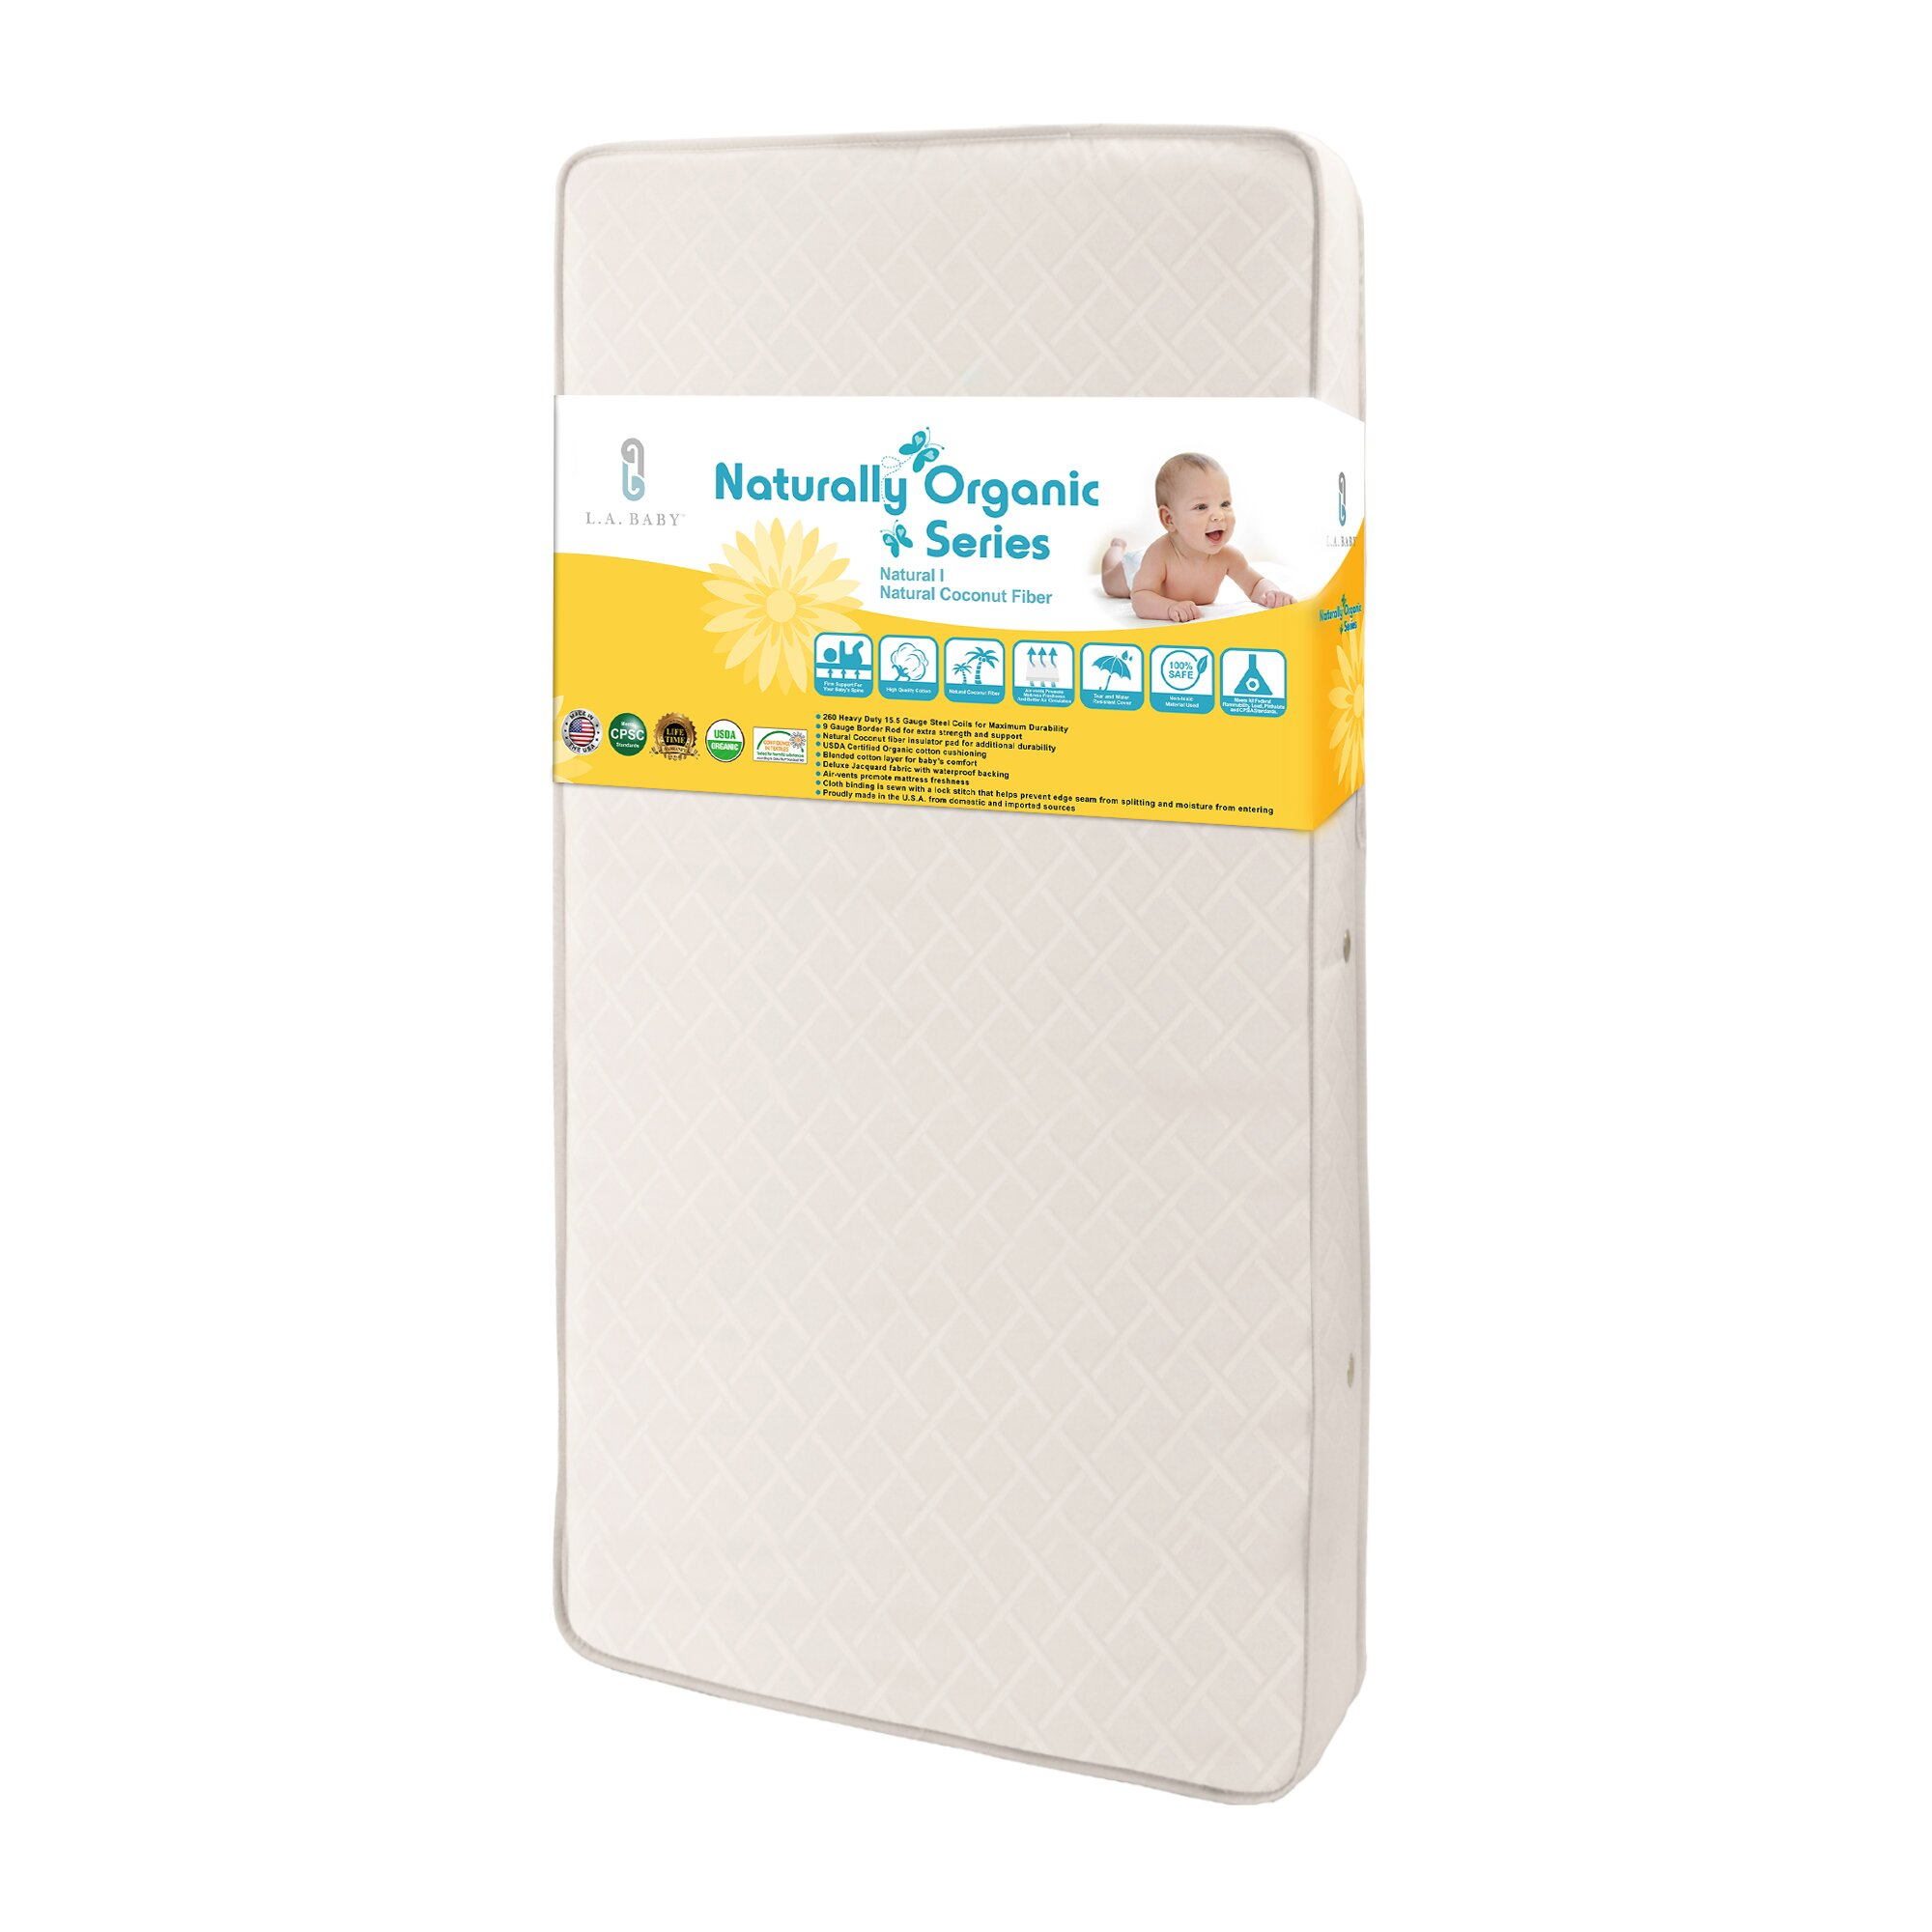 Best baby crib mattress 2013 - L A Baby Natural I 5 75 Quot Crib Mattress